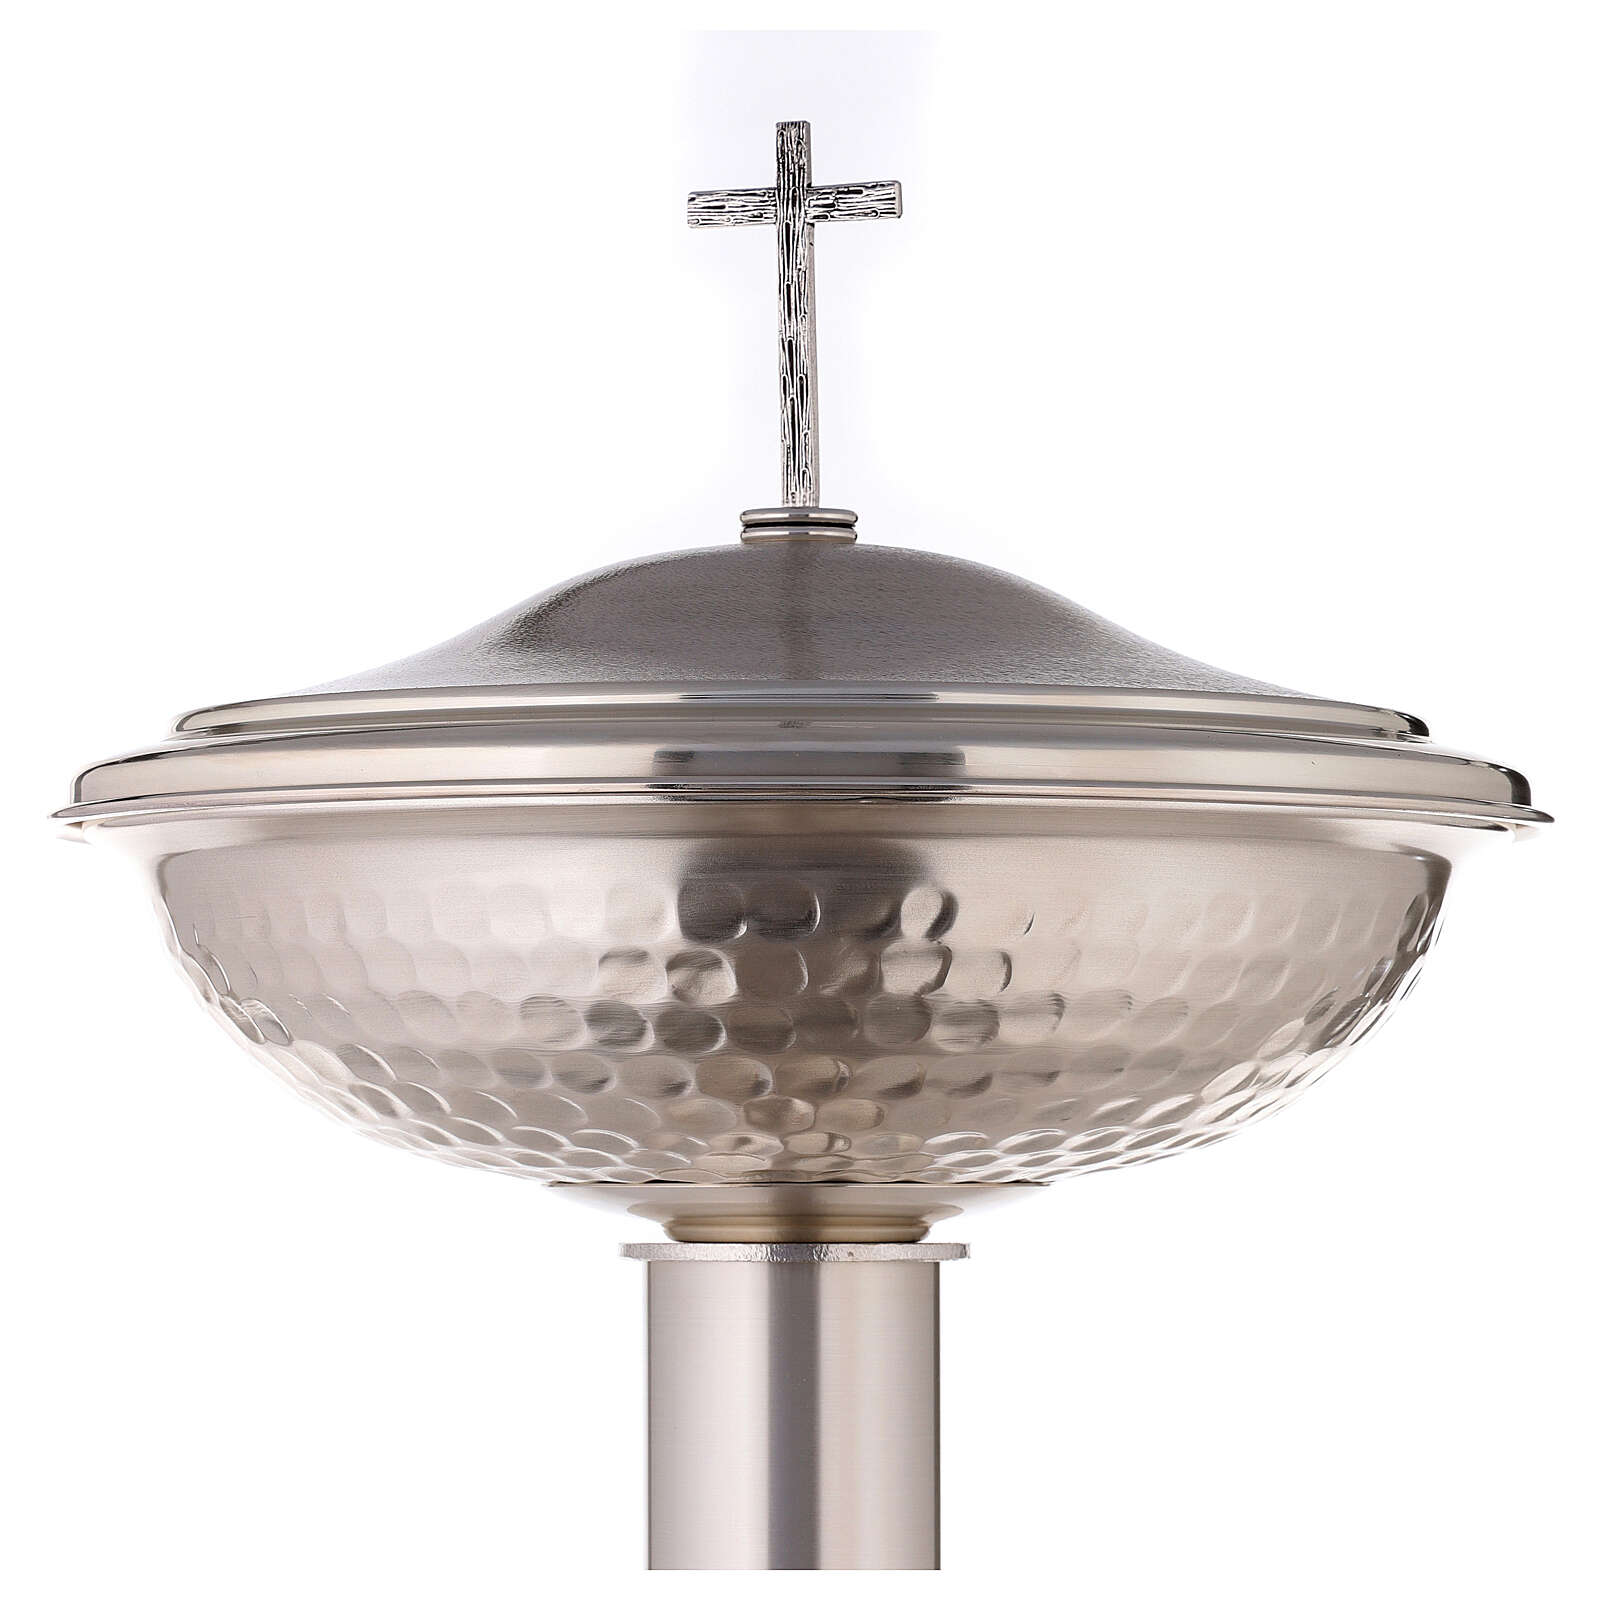 Baptismal font in silver  lated bronze, hammered 4